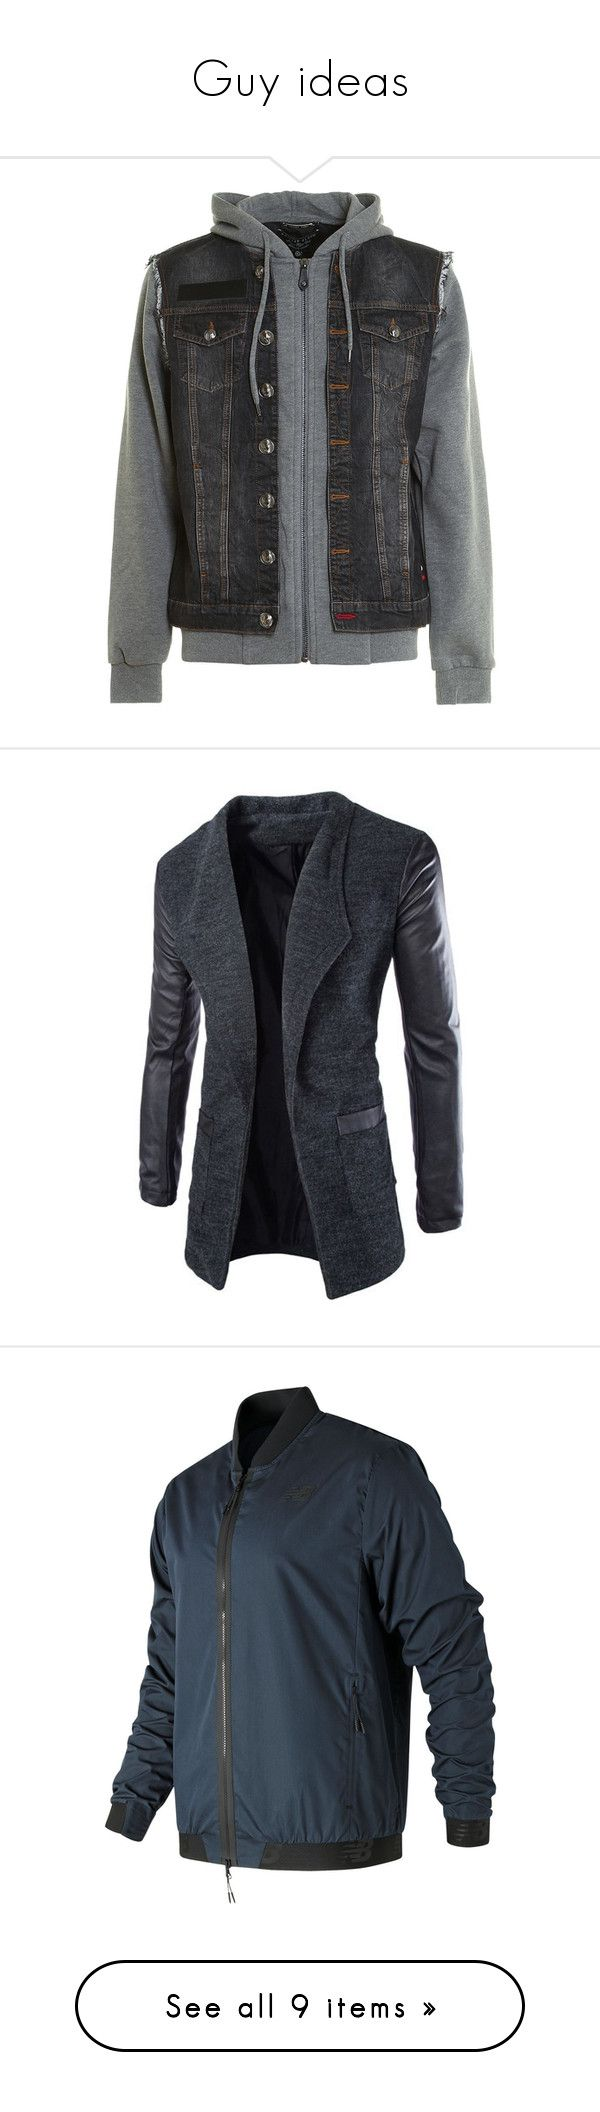 """""""Guy ideas"""" by theclocker ❤ liked on Polyvore featuring men's fashion, men's clothing, men's outerwear, men's jackets, grey, mens leather sleeve denim jacket, mens grey denim jacket, mens denim jacket, men's embroidered bomber jacket and mens zip jacket"""